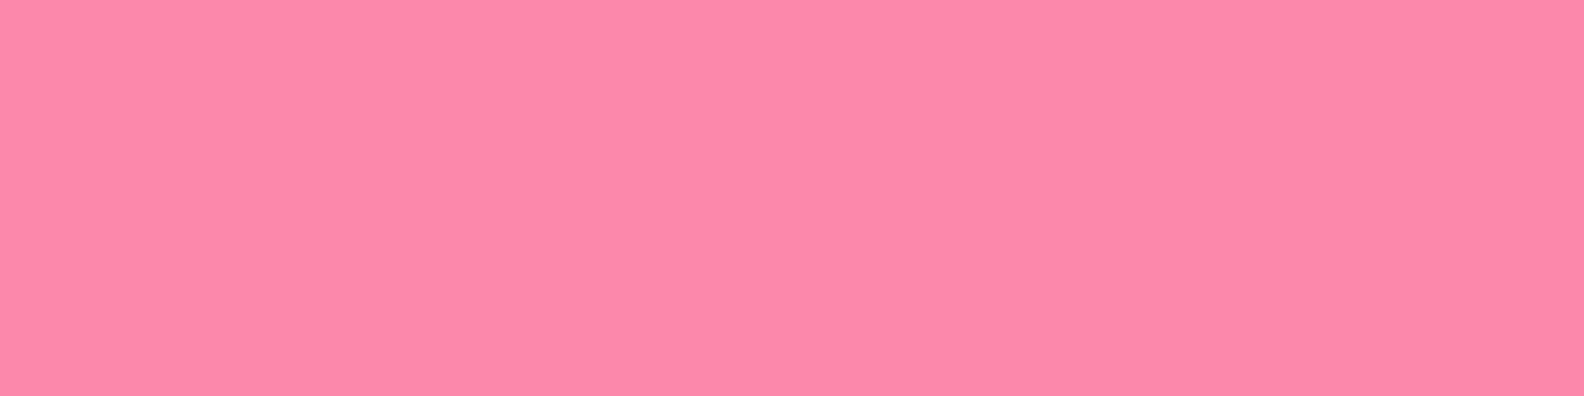 1584x396 Tickle Me Pink Solid Color Background